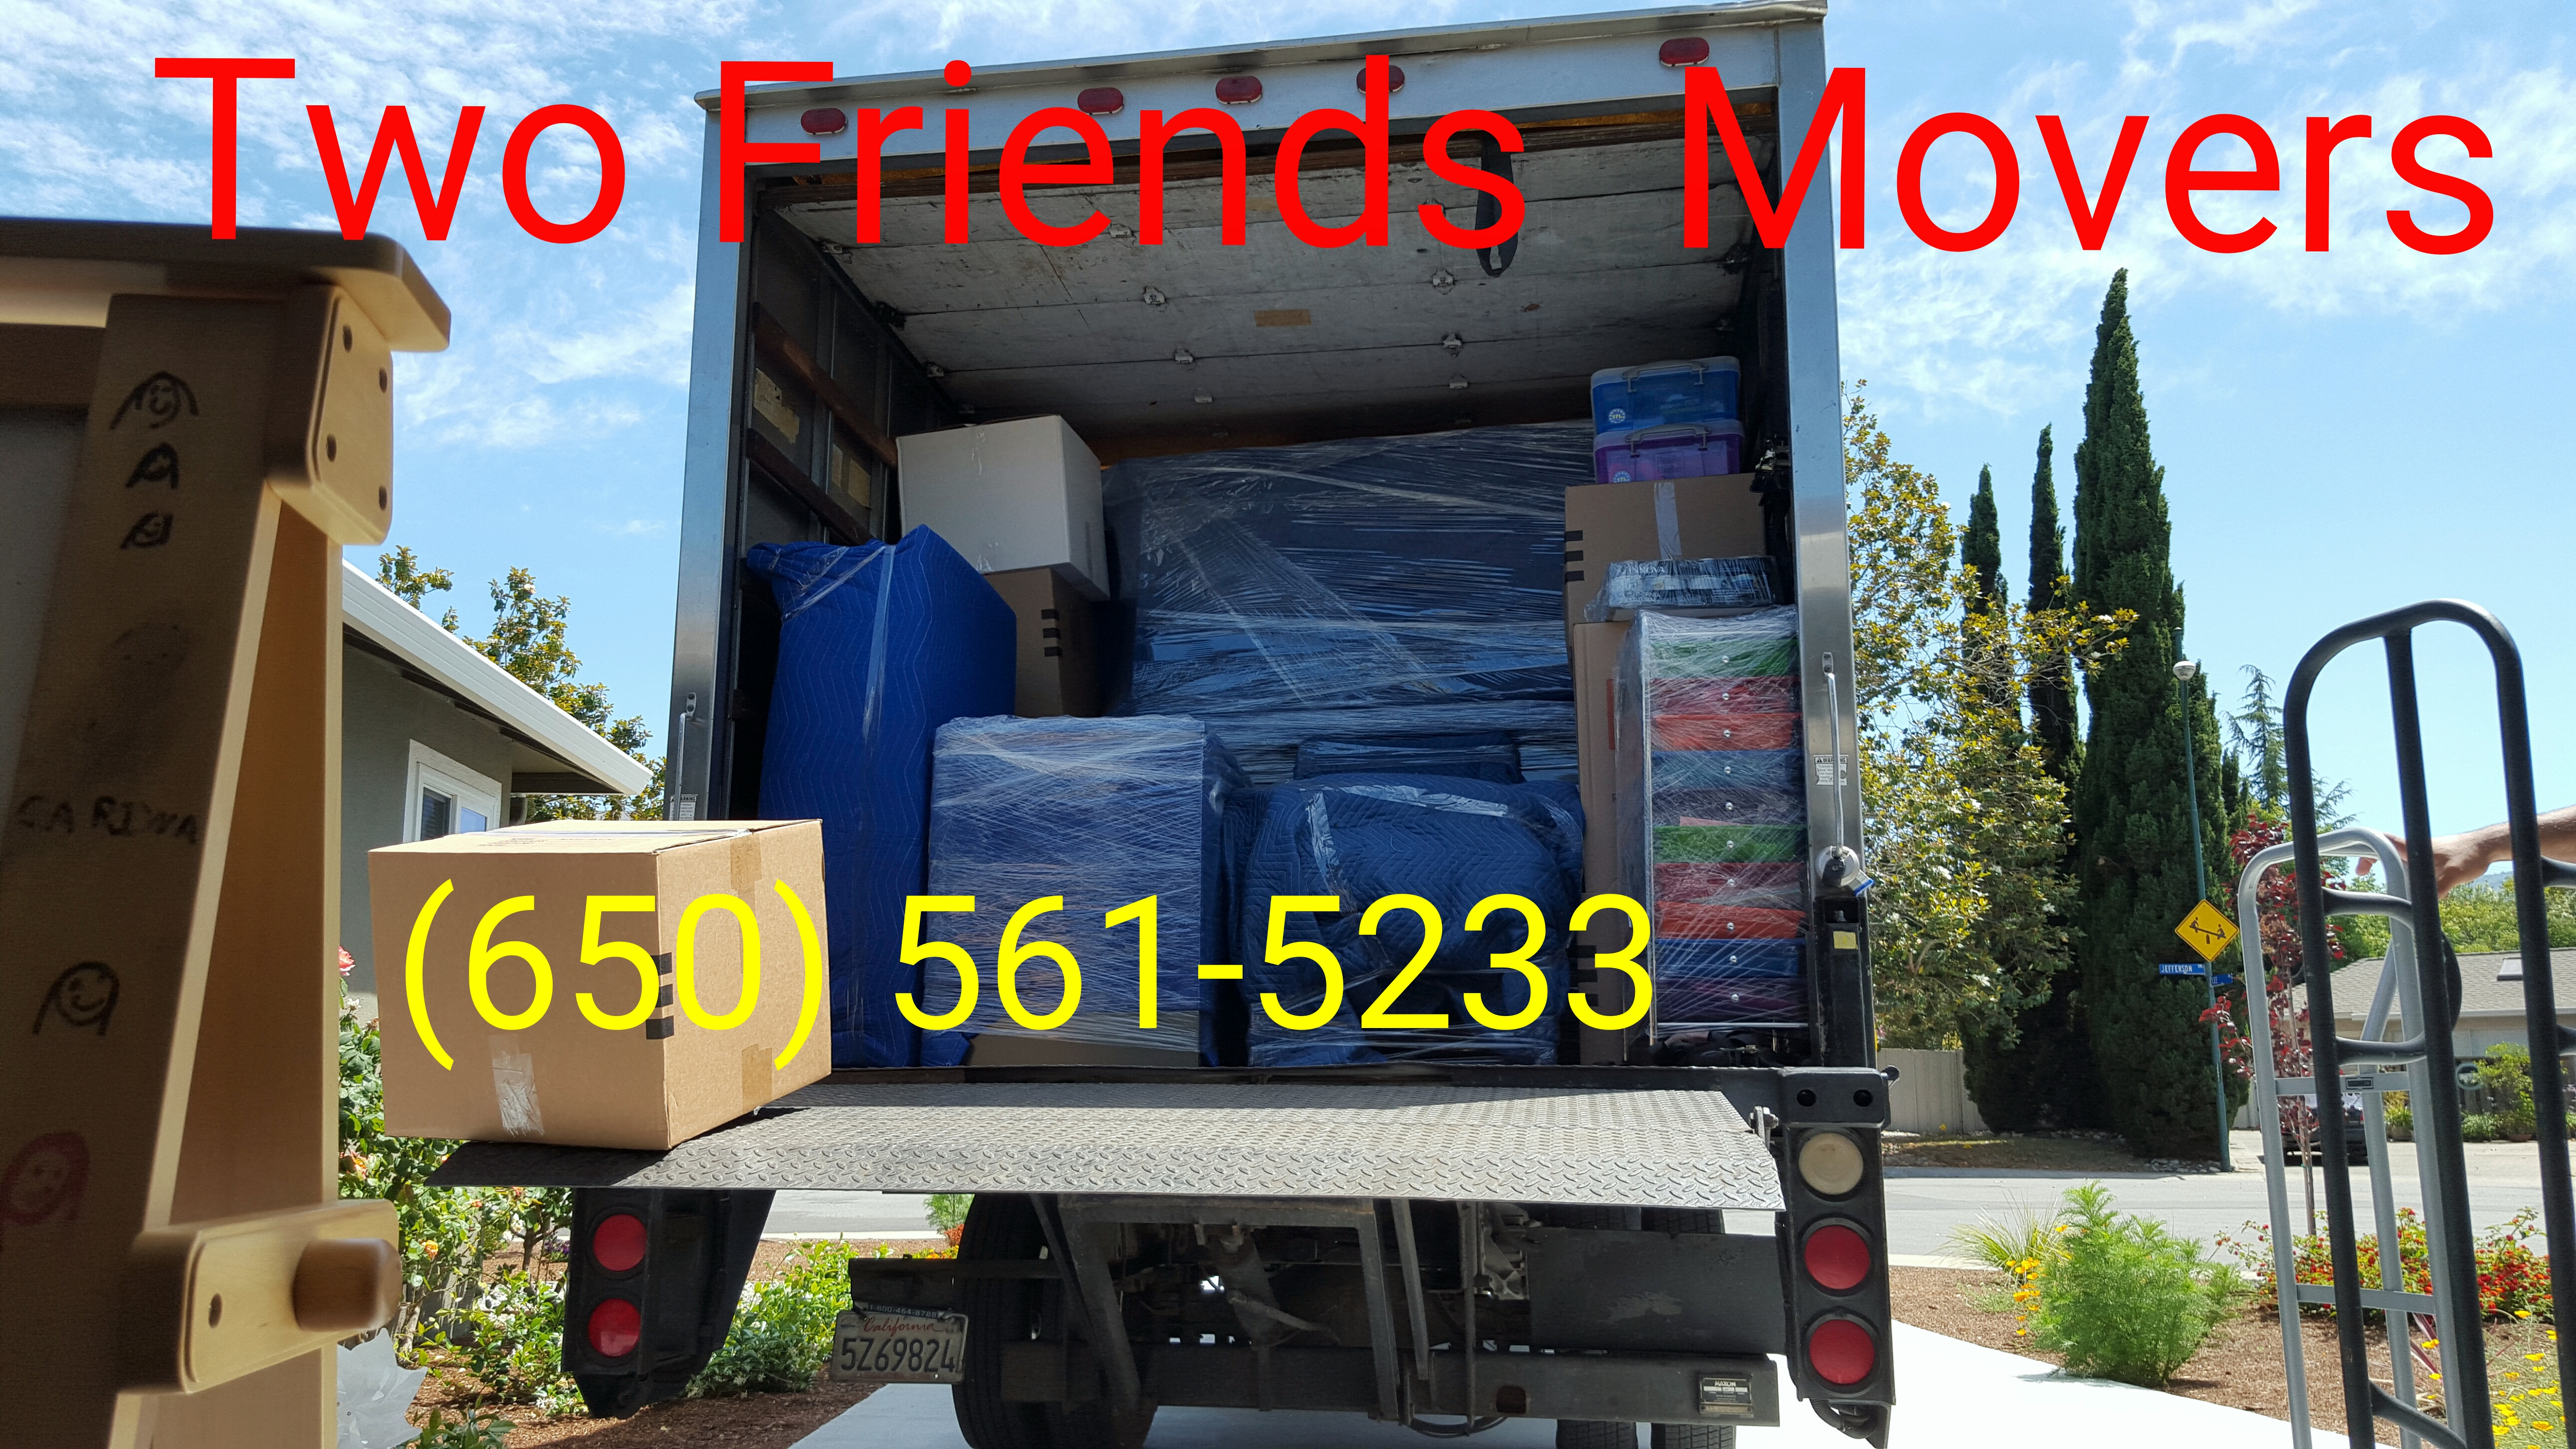 two friends movers image 0